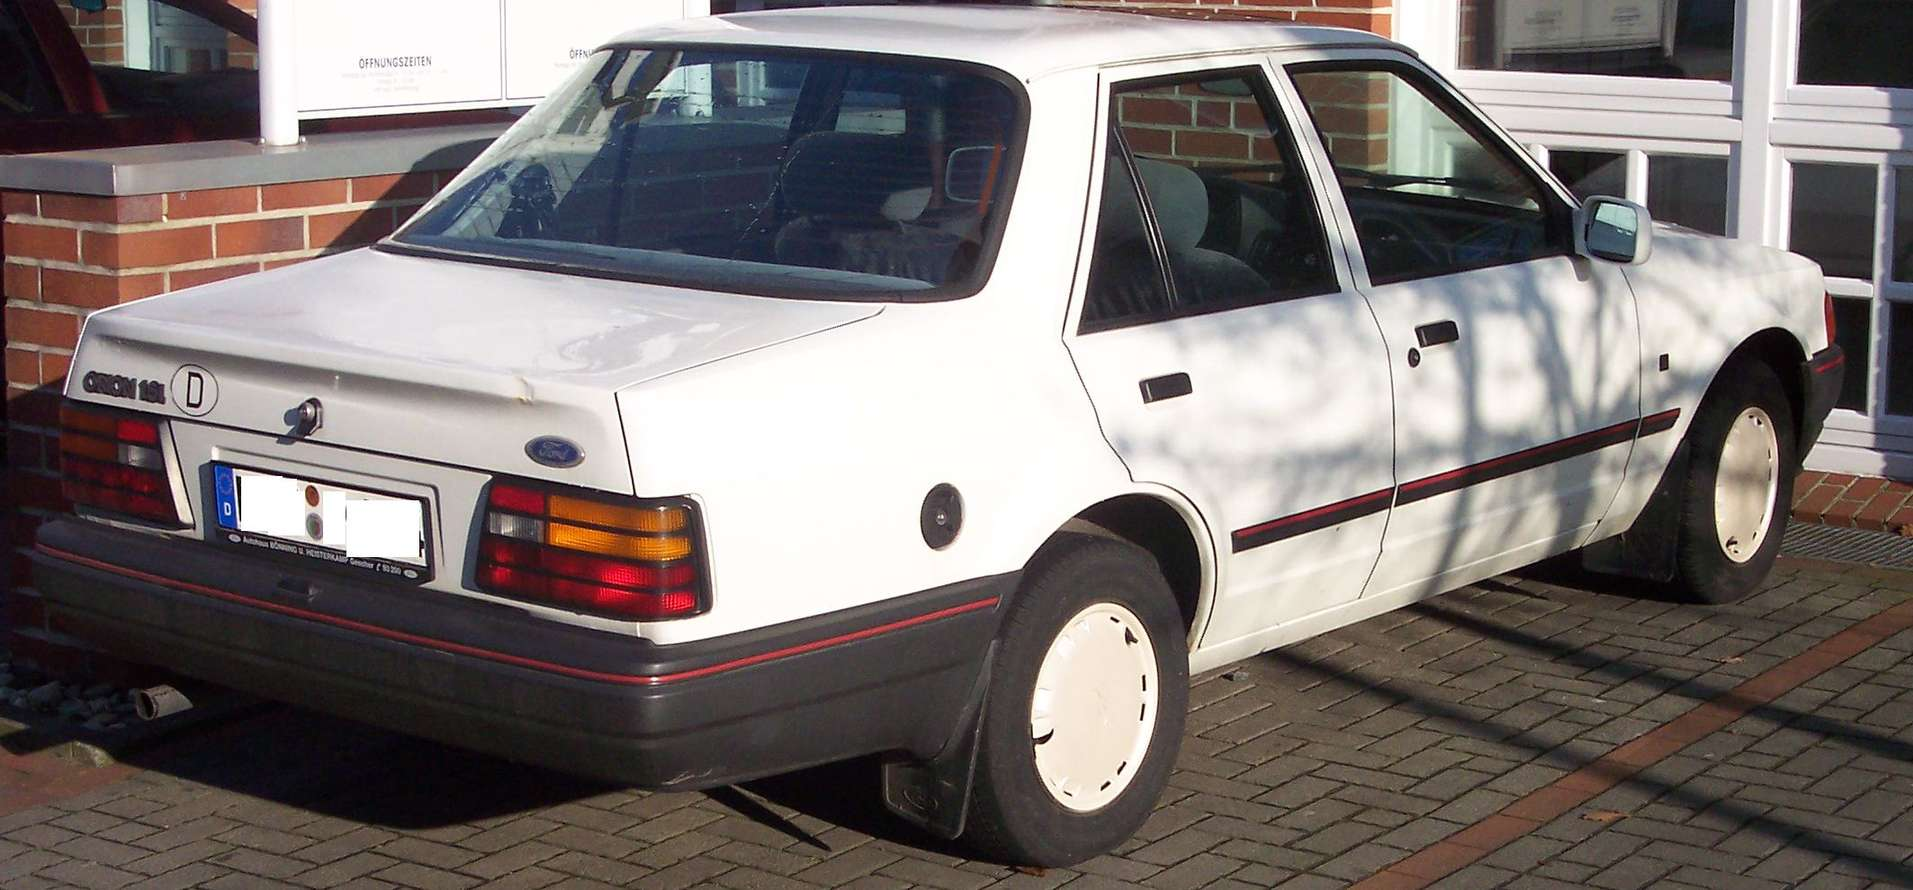 Ford Orion #8272643